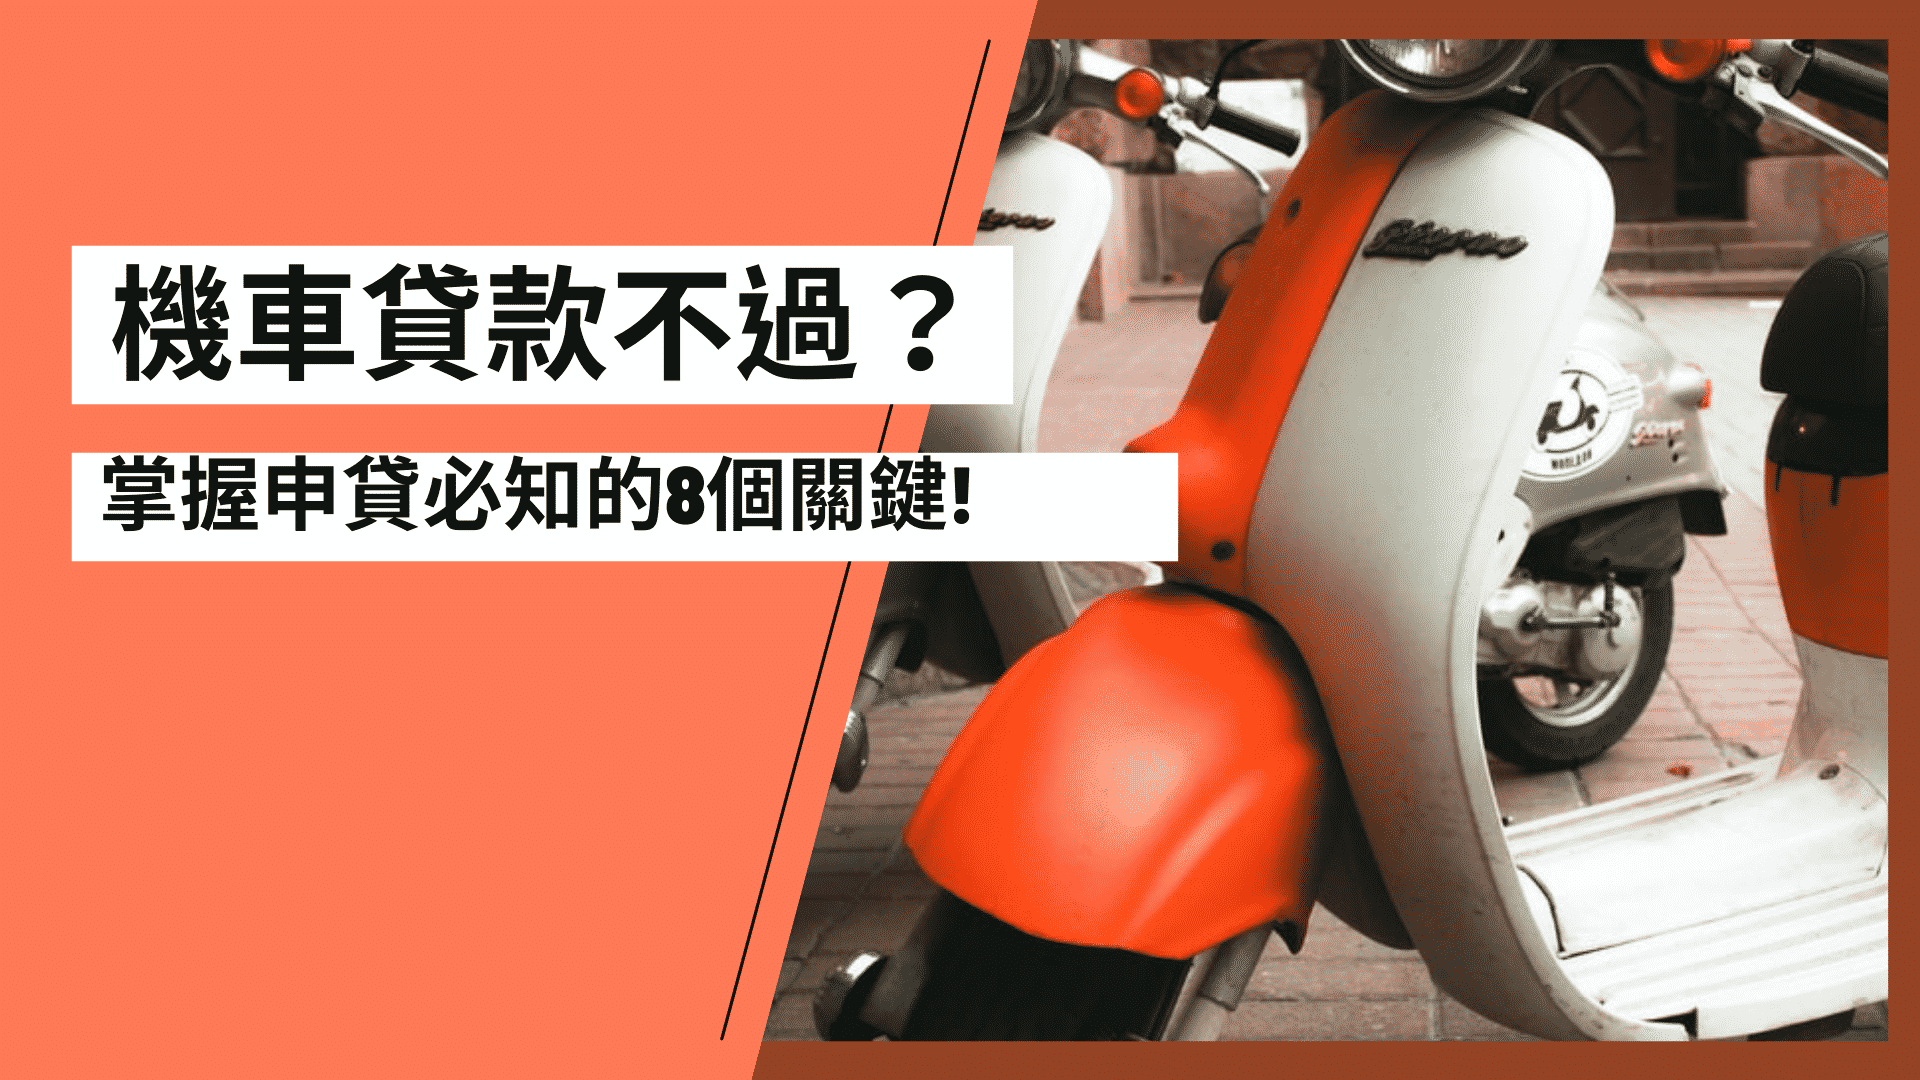 You are currently viewing 機車貸款不過? 掌握申貸必知的8個關鍵!